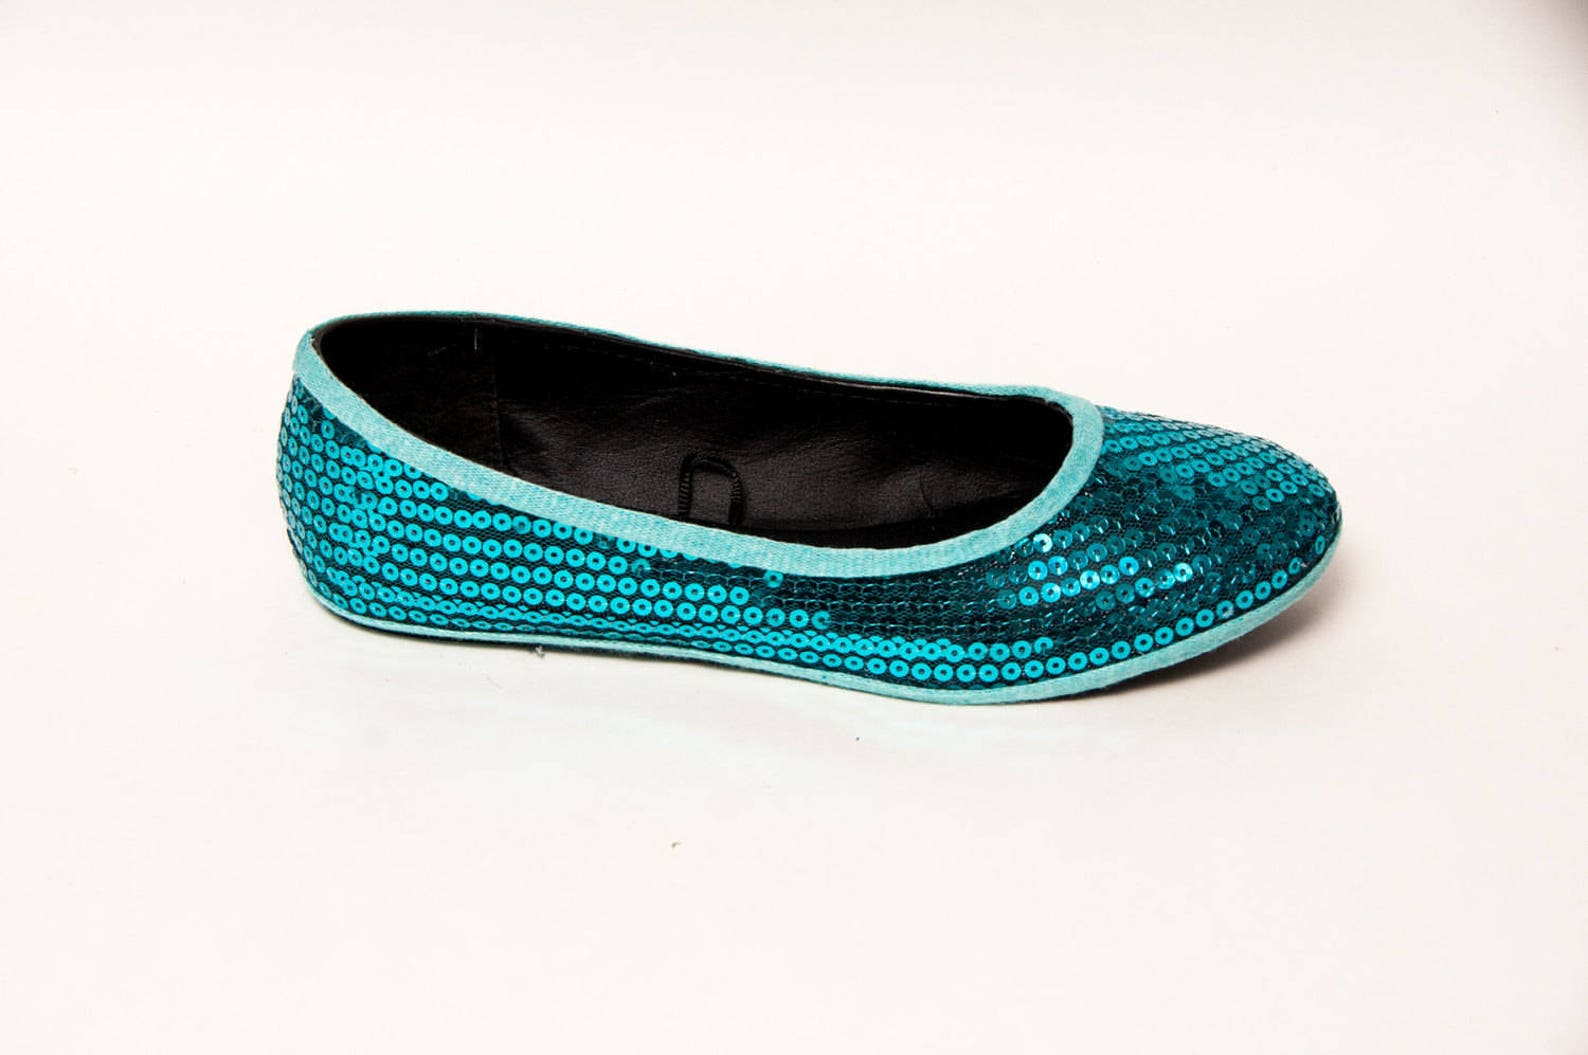 sequin - jade green blue ballet slipper flats custom shoes by princess pumps